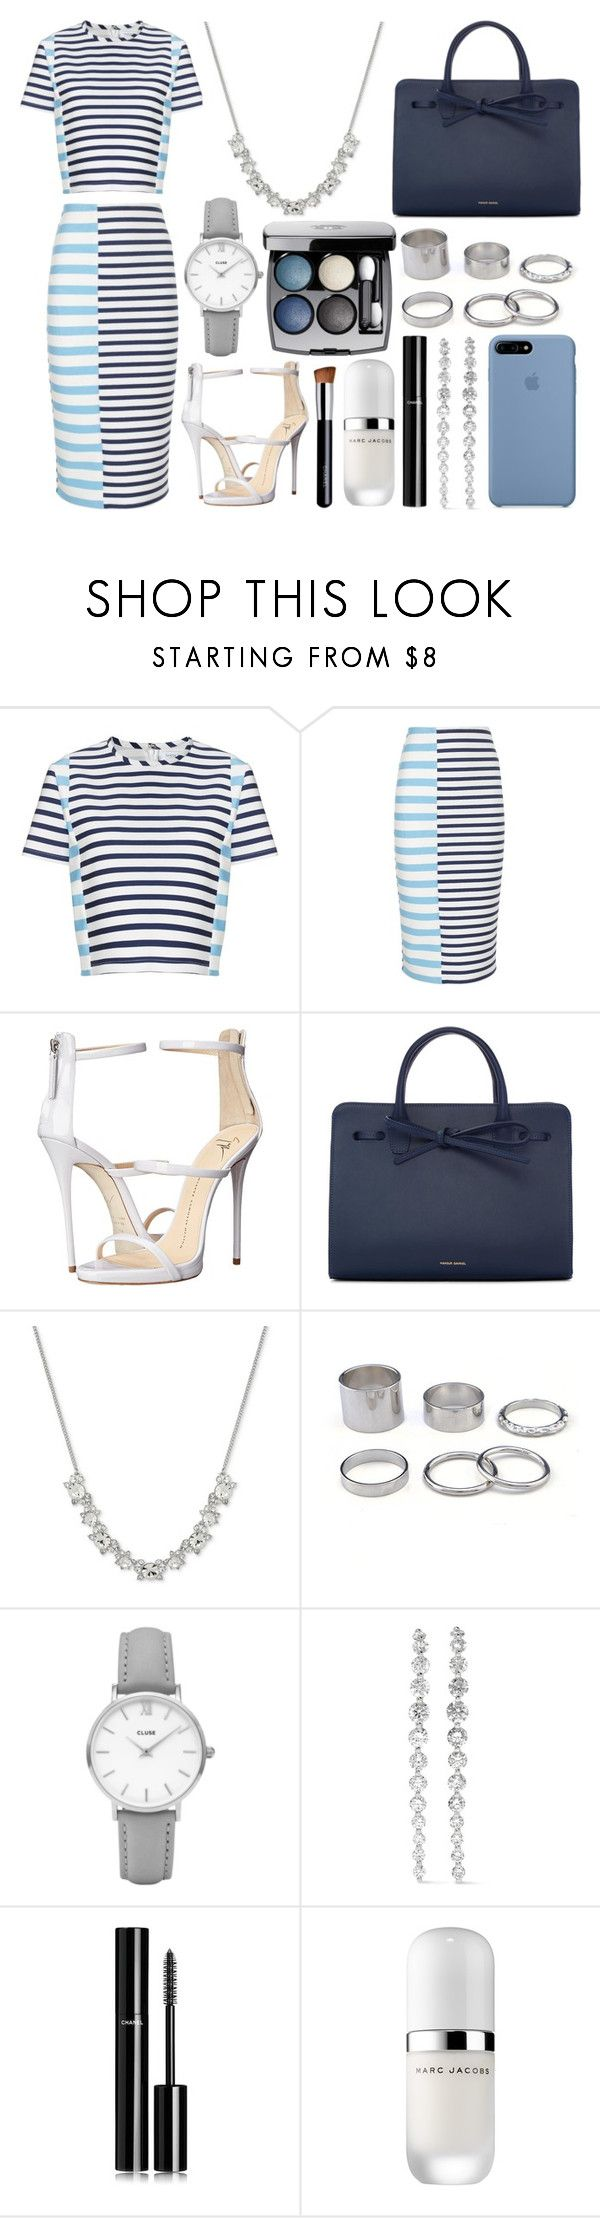 """375."" by plaraa on Polyvore featuring moda, Tanya Taylor, Giuseppe Zanotti, Mansur Gavriel, Givenchy, CLUSE, Anita Ko, Chanel y Marc Jacobs"